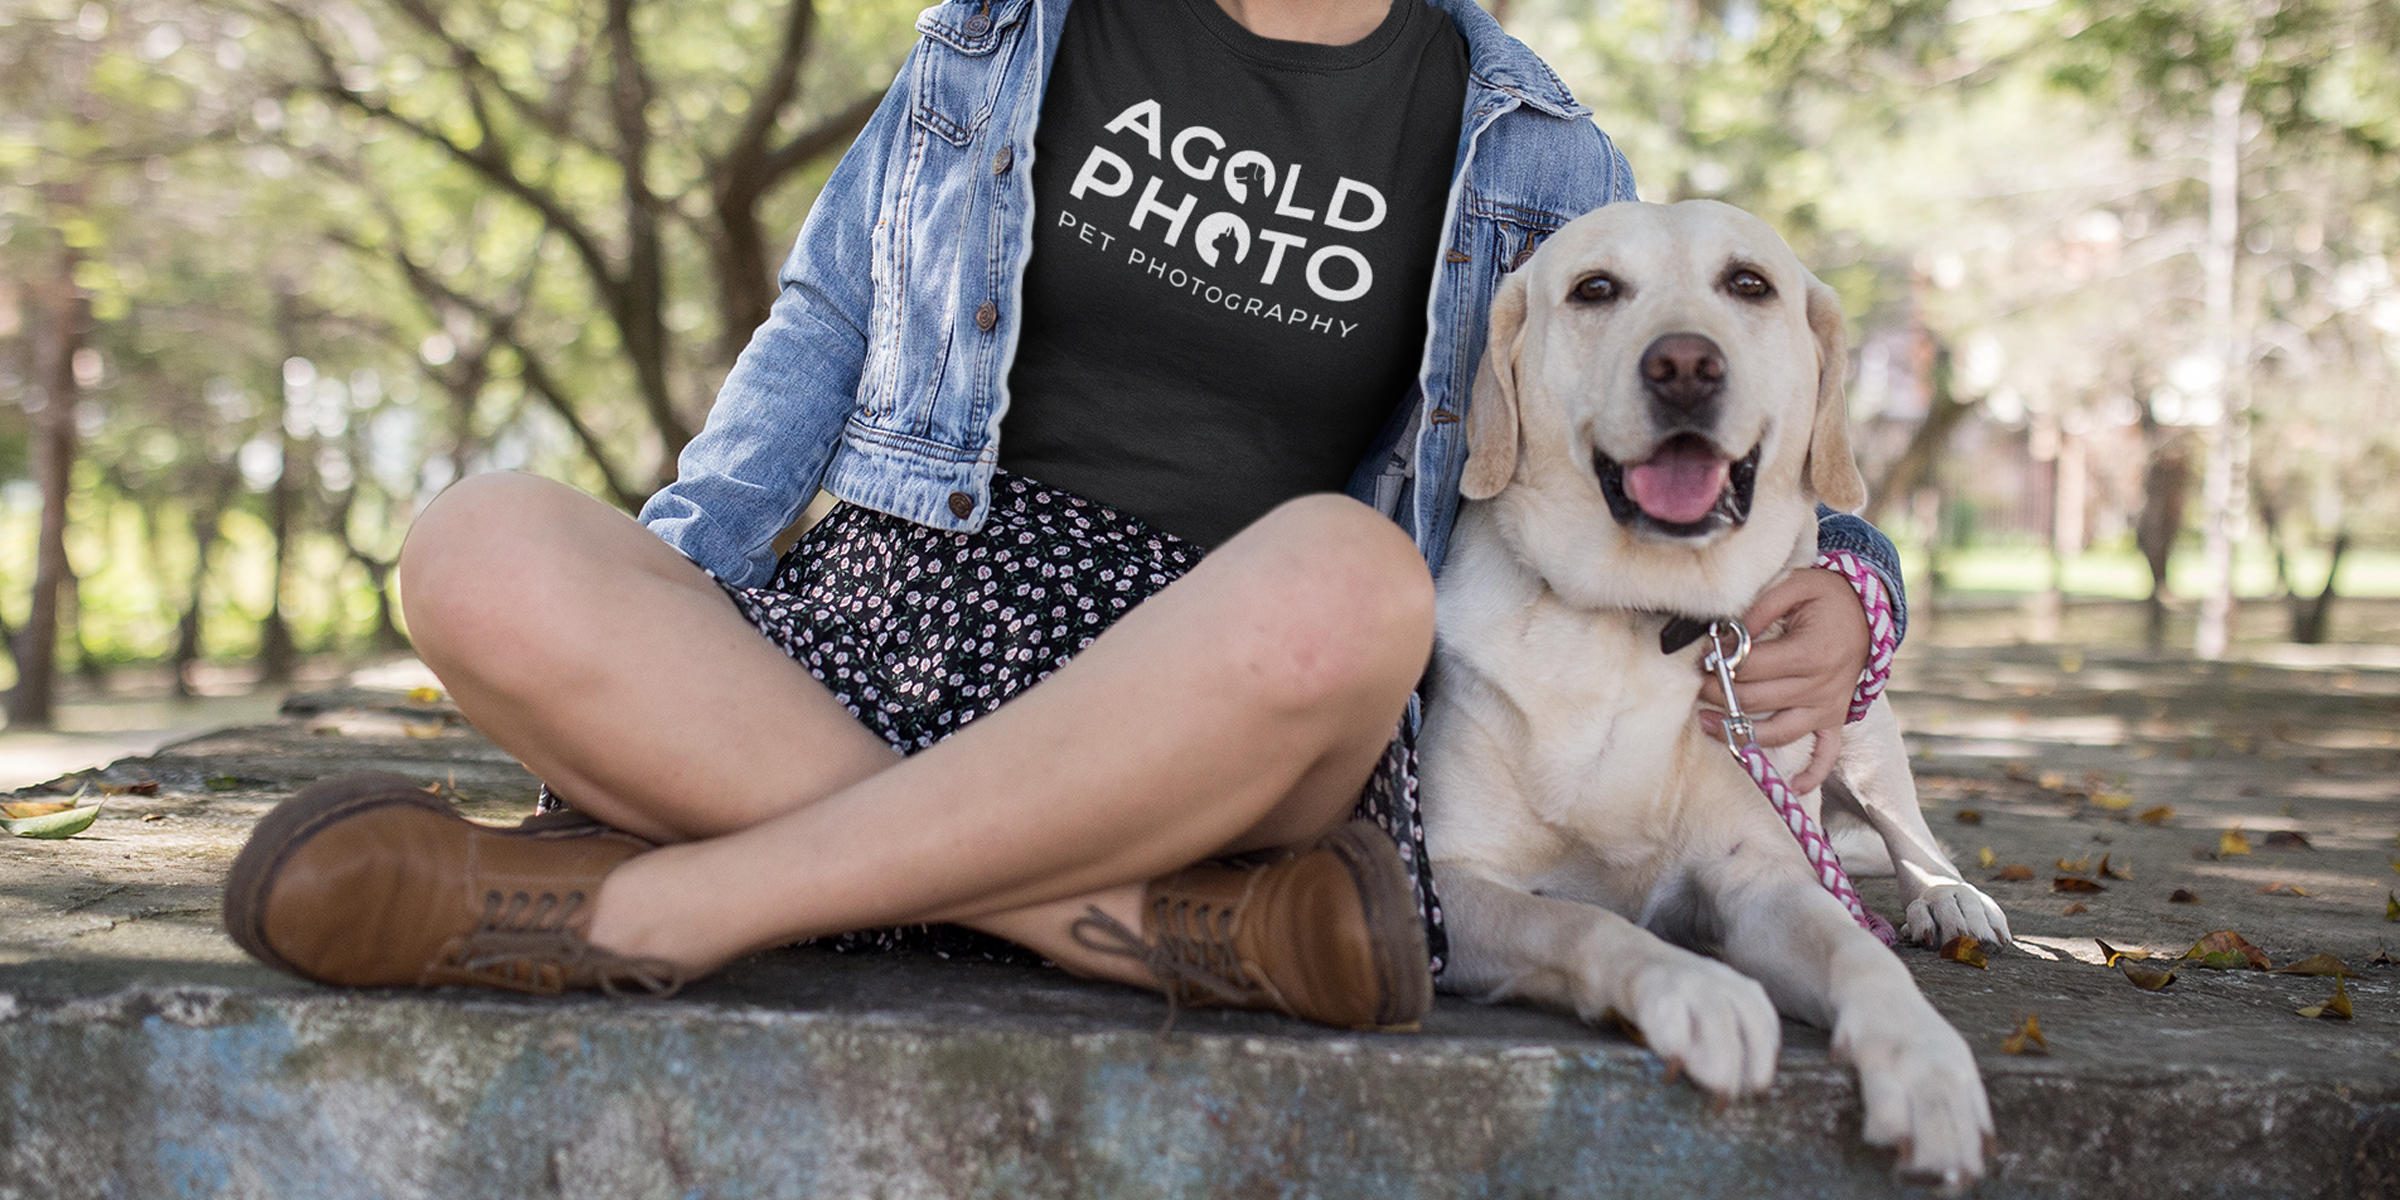 AGoldPhoto Pet Photography - background image